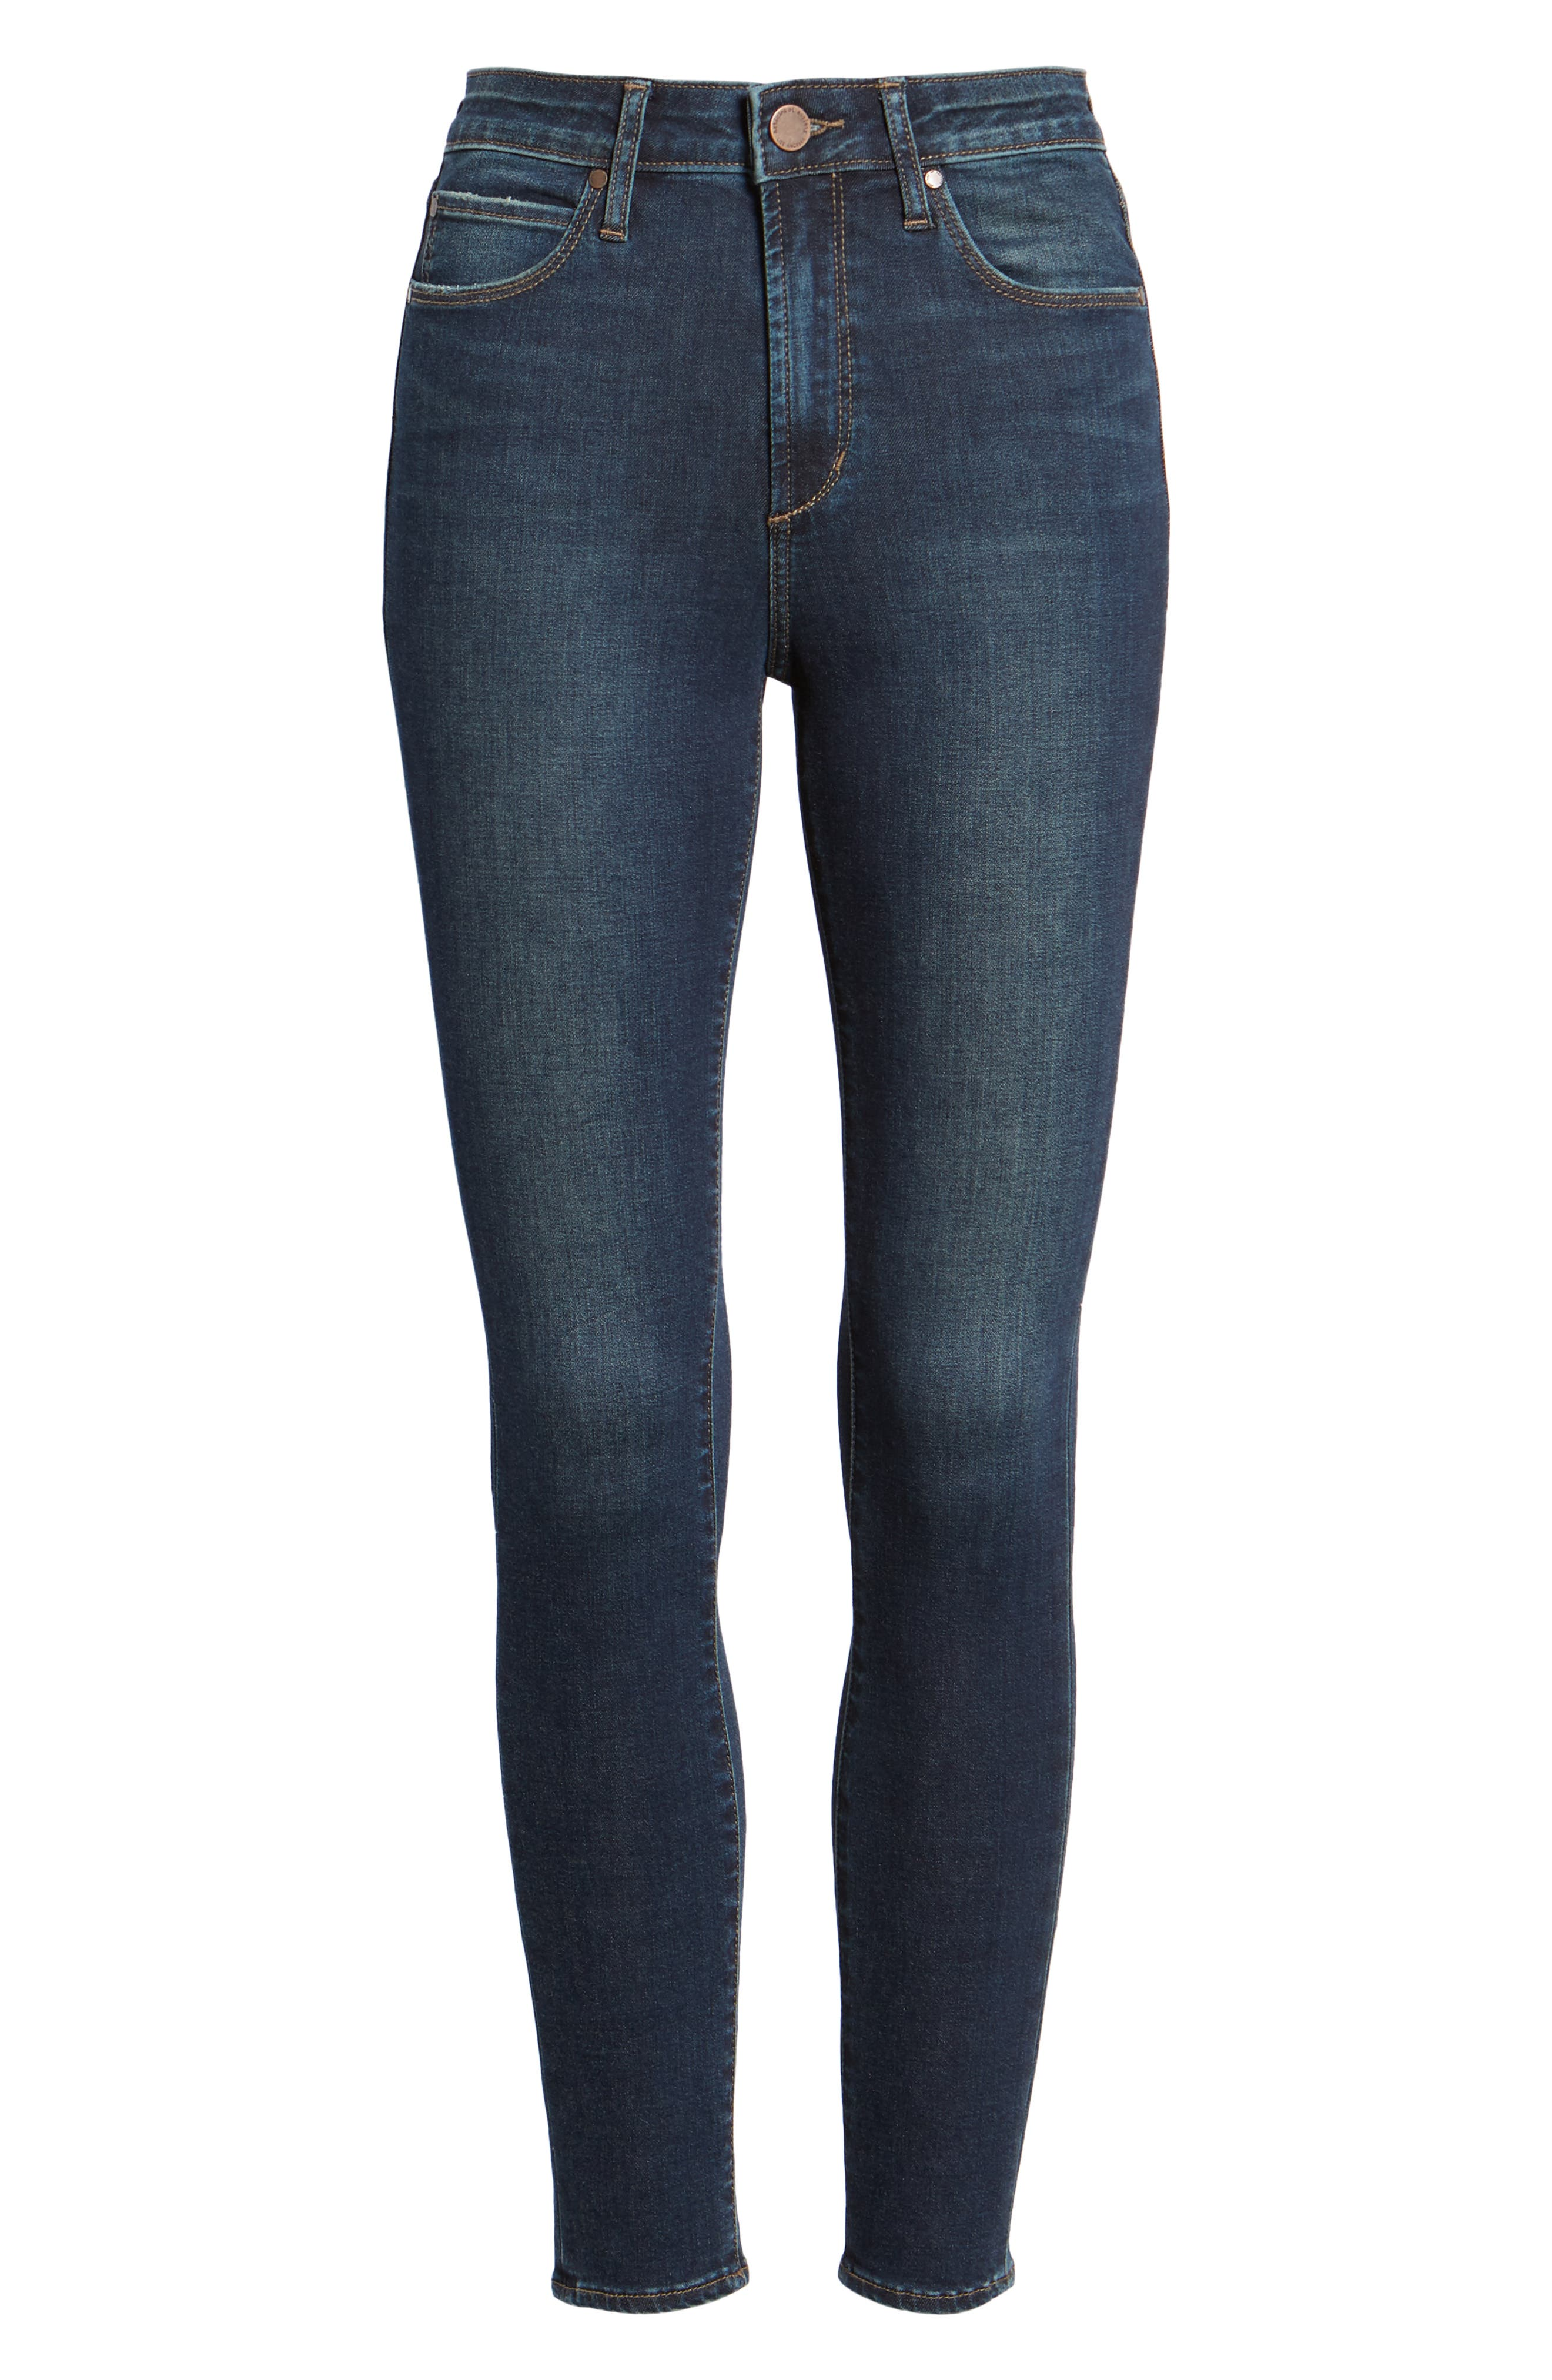 ARTICLES OF SOCIETY, Heather High Waist Ankle Skinny Jeans, Alternate thumbnail 7, color, 461